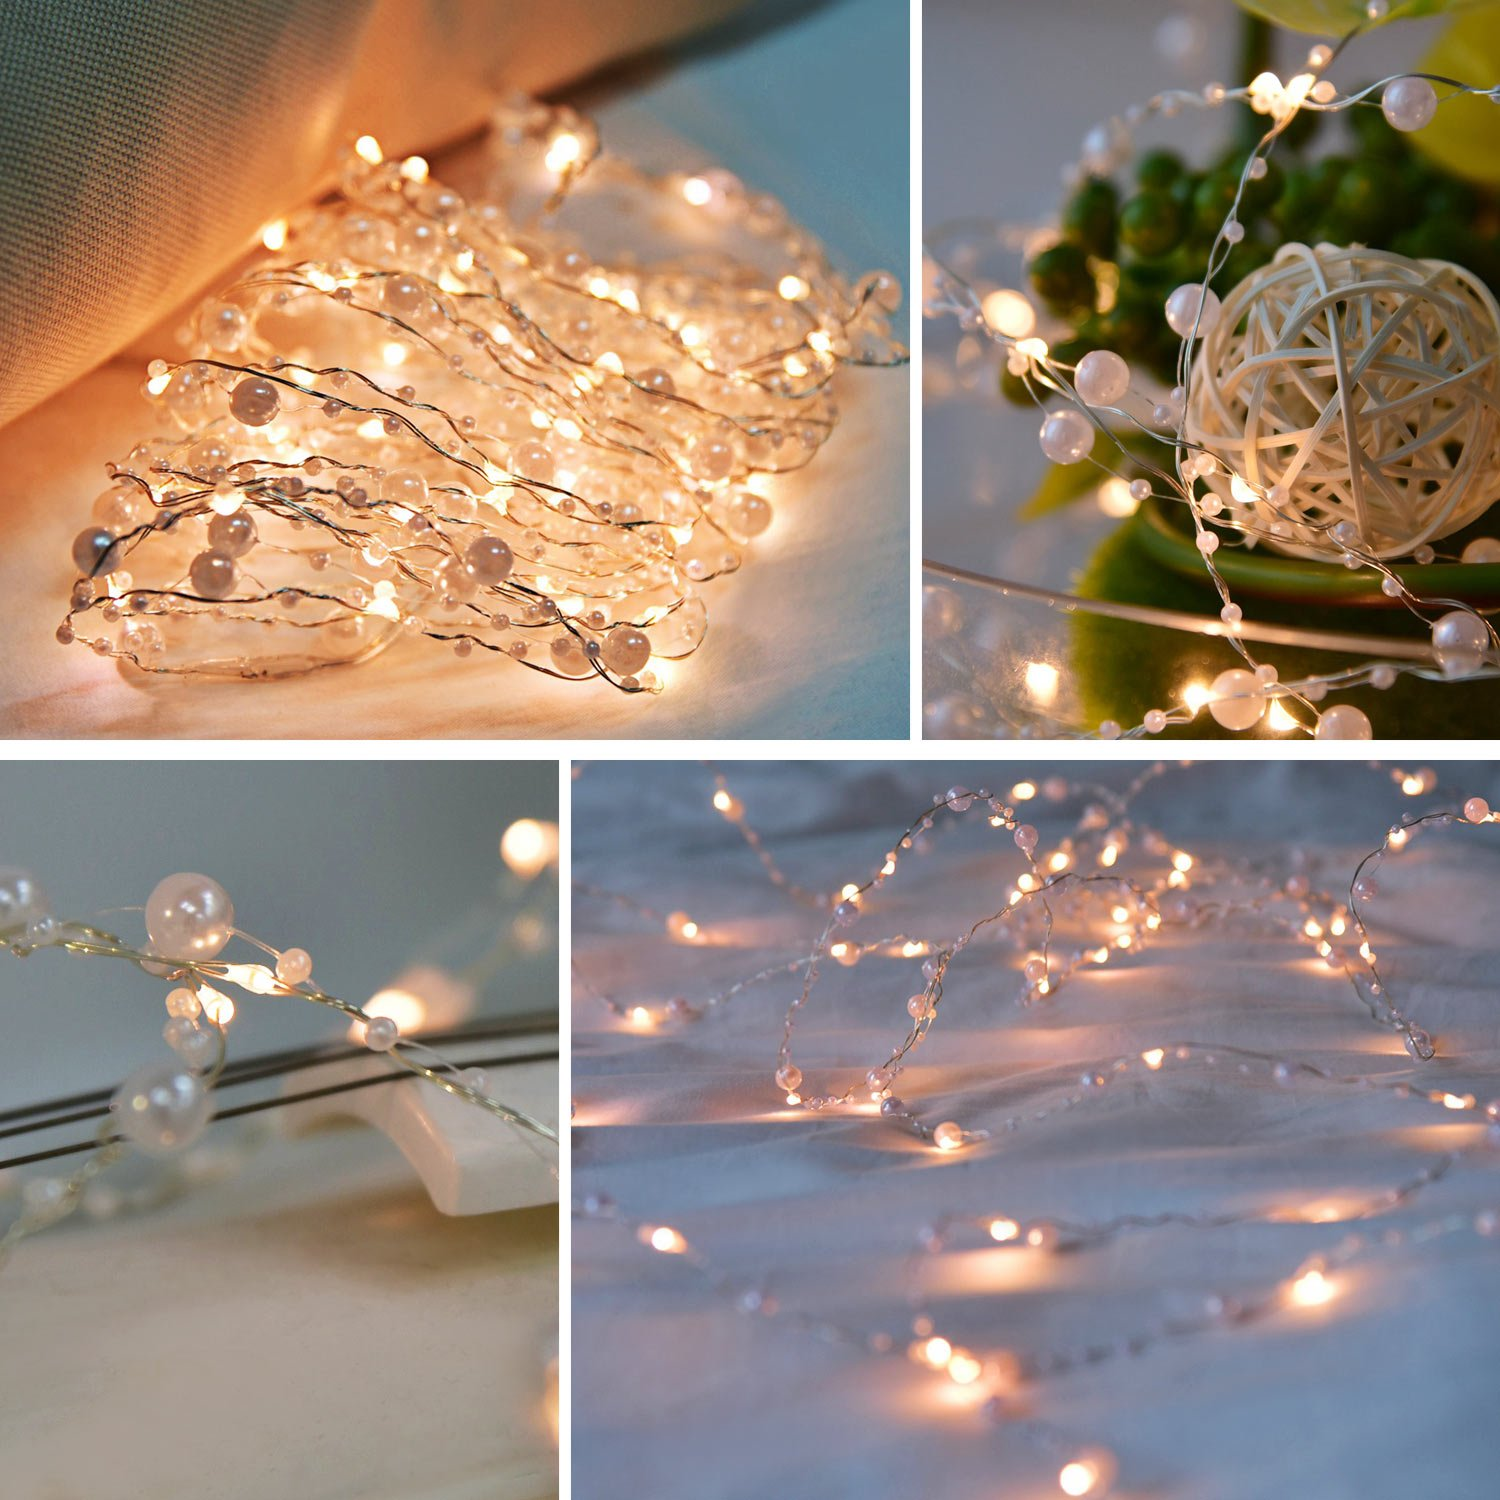 ENGIVE LED Fairy String Lights,19.7Ft/6M 60leds Pearl String Lights Christmas Garden Home Party Festival Decorations Crafting Battery Operated Lights(Warm White) by ENGIVE (Image #1)